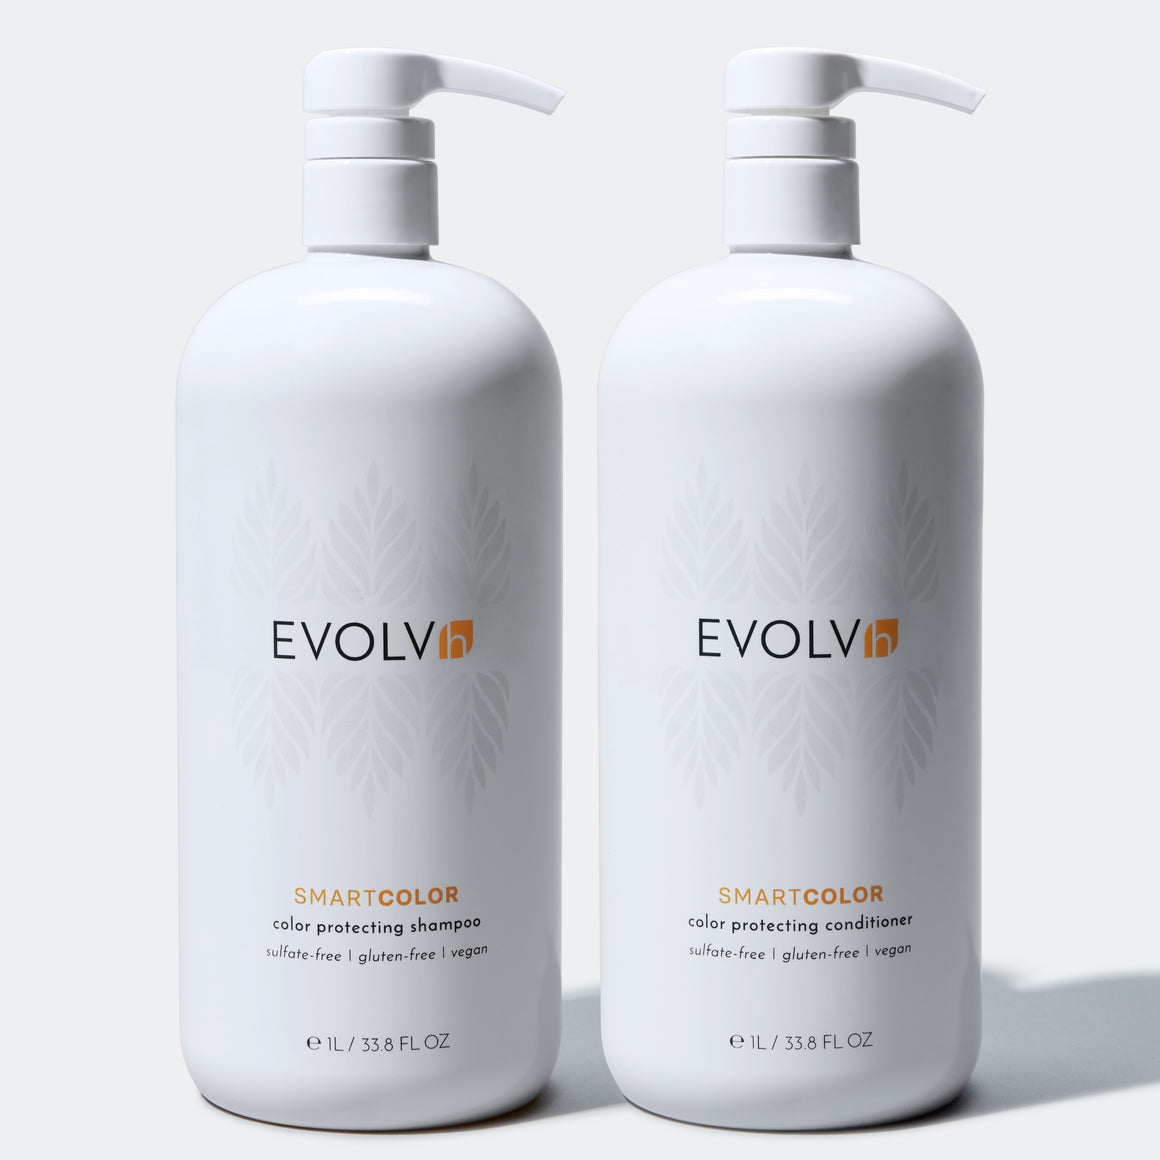 SmartColor Shampoo & Conditioner Liter Duo